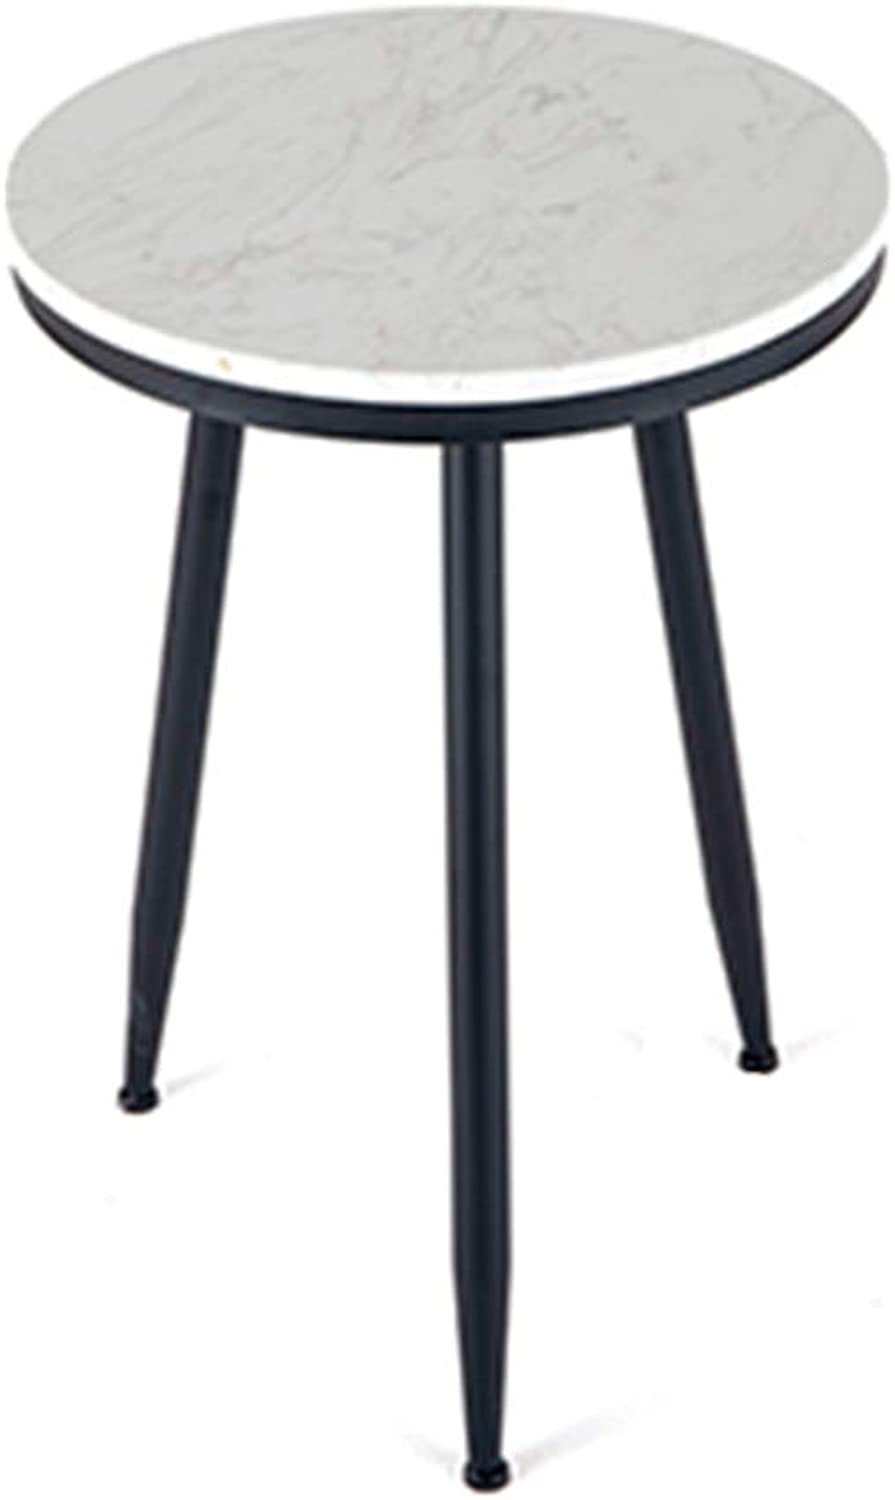 XIAOYAN End Table Marble + Wrought Iron Living Room Sofa Side Table Bedside Small Round Table Multi-Function Display Stand for Small Apartment gold Black Multifunction (color   Black)